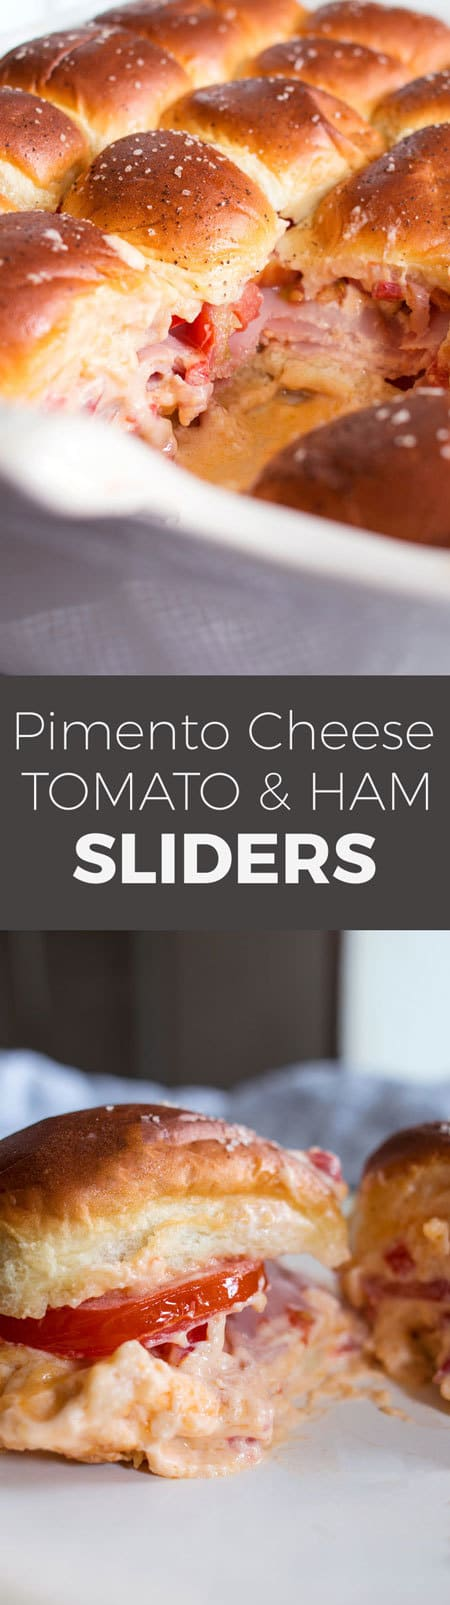 Pimento cheese tomato ham sliders are the perfect party food! Perfect for big crowds, these flavorful sandwiches will be the star of your next event.